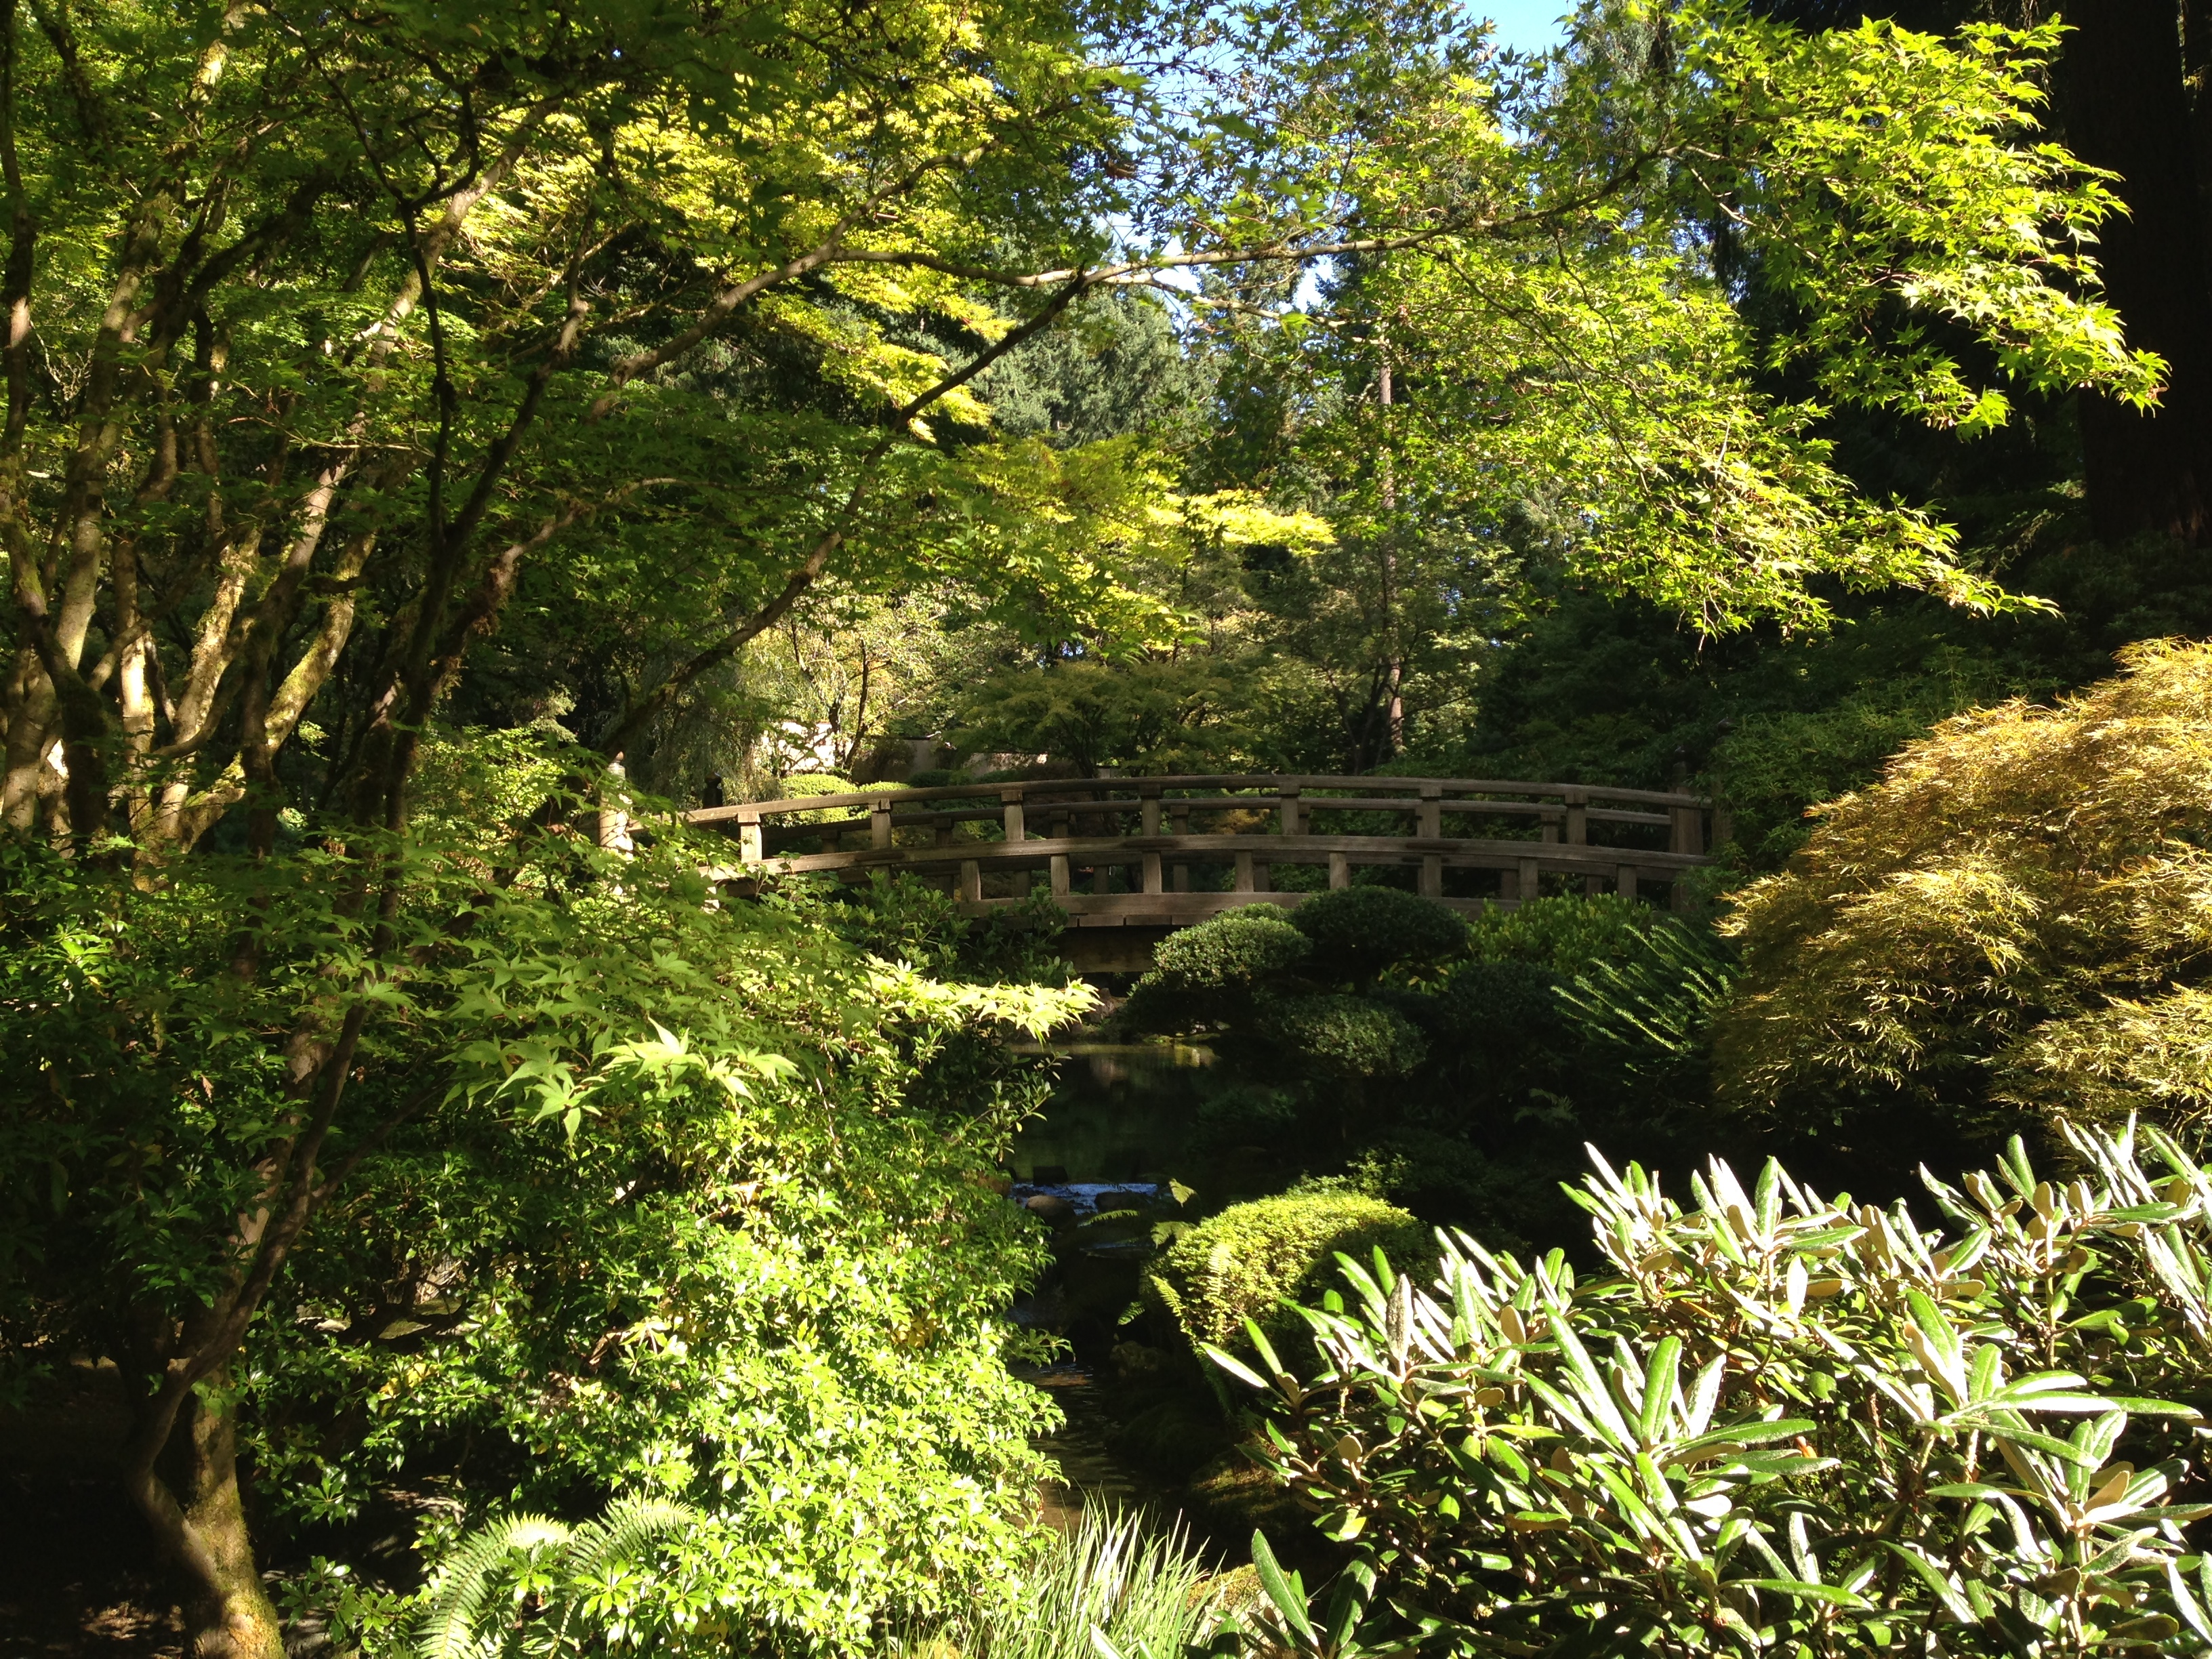 Greenery in Japanese Garden